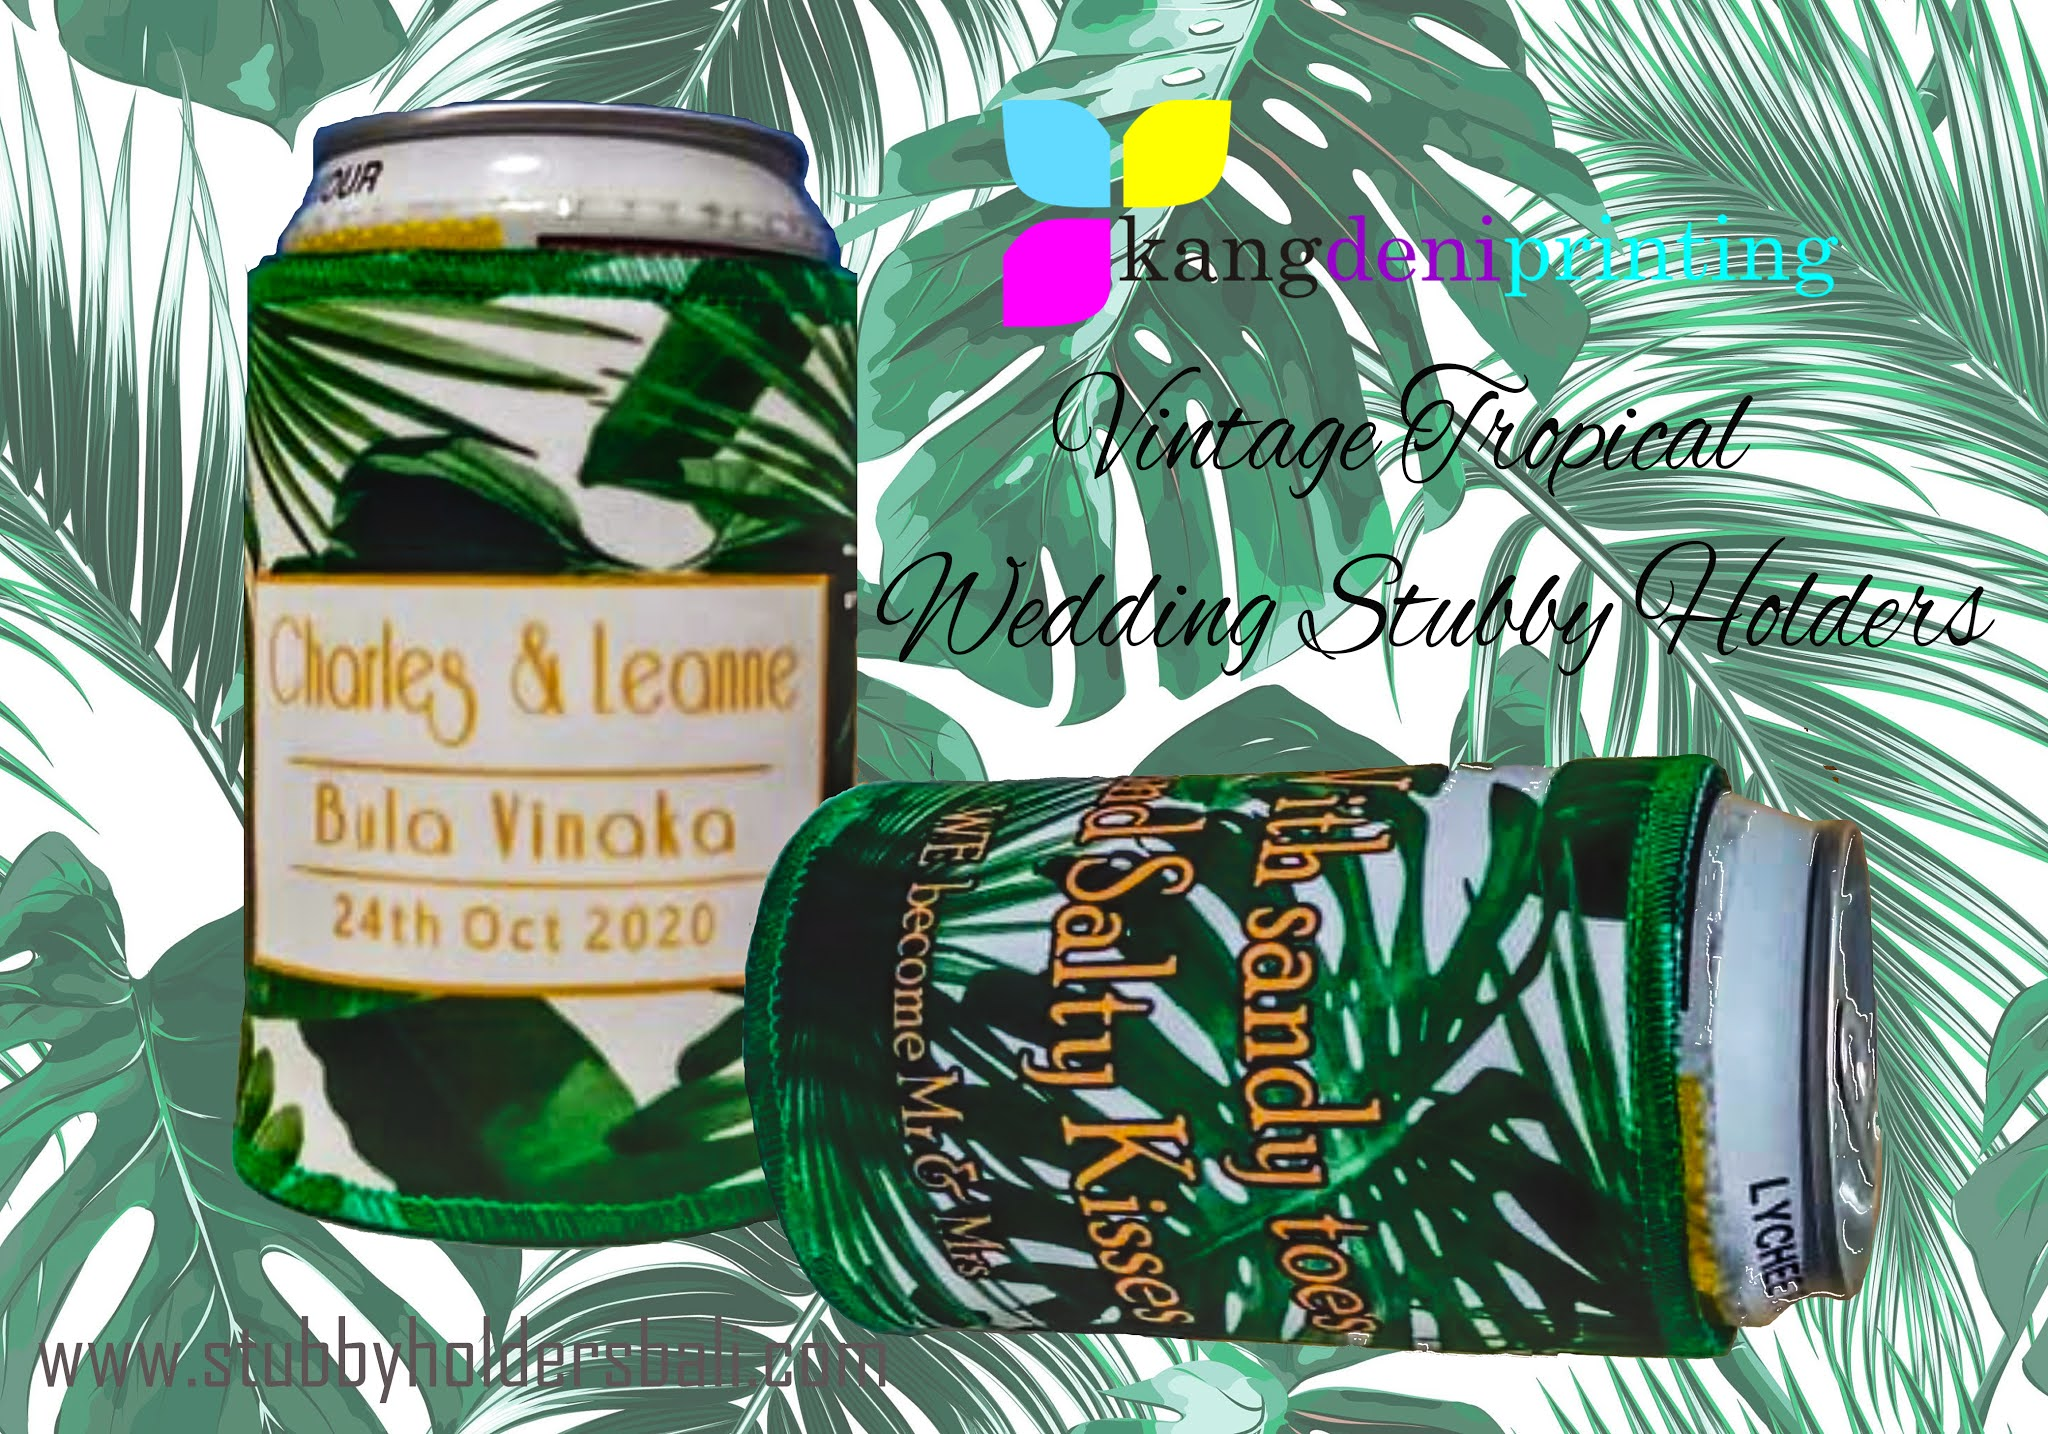 Product Vintage Tropical Wedding Stubby Holders